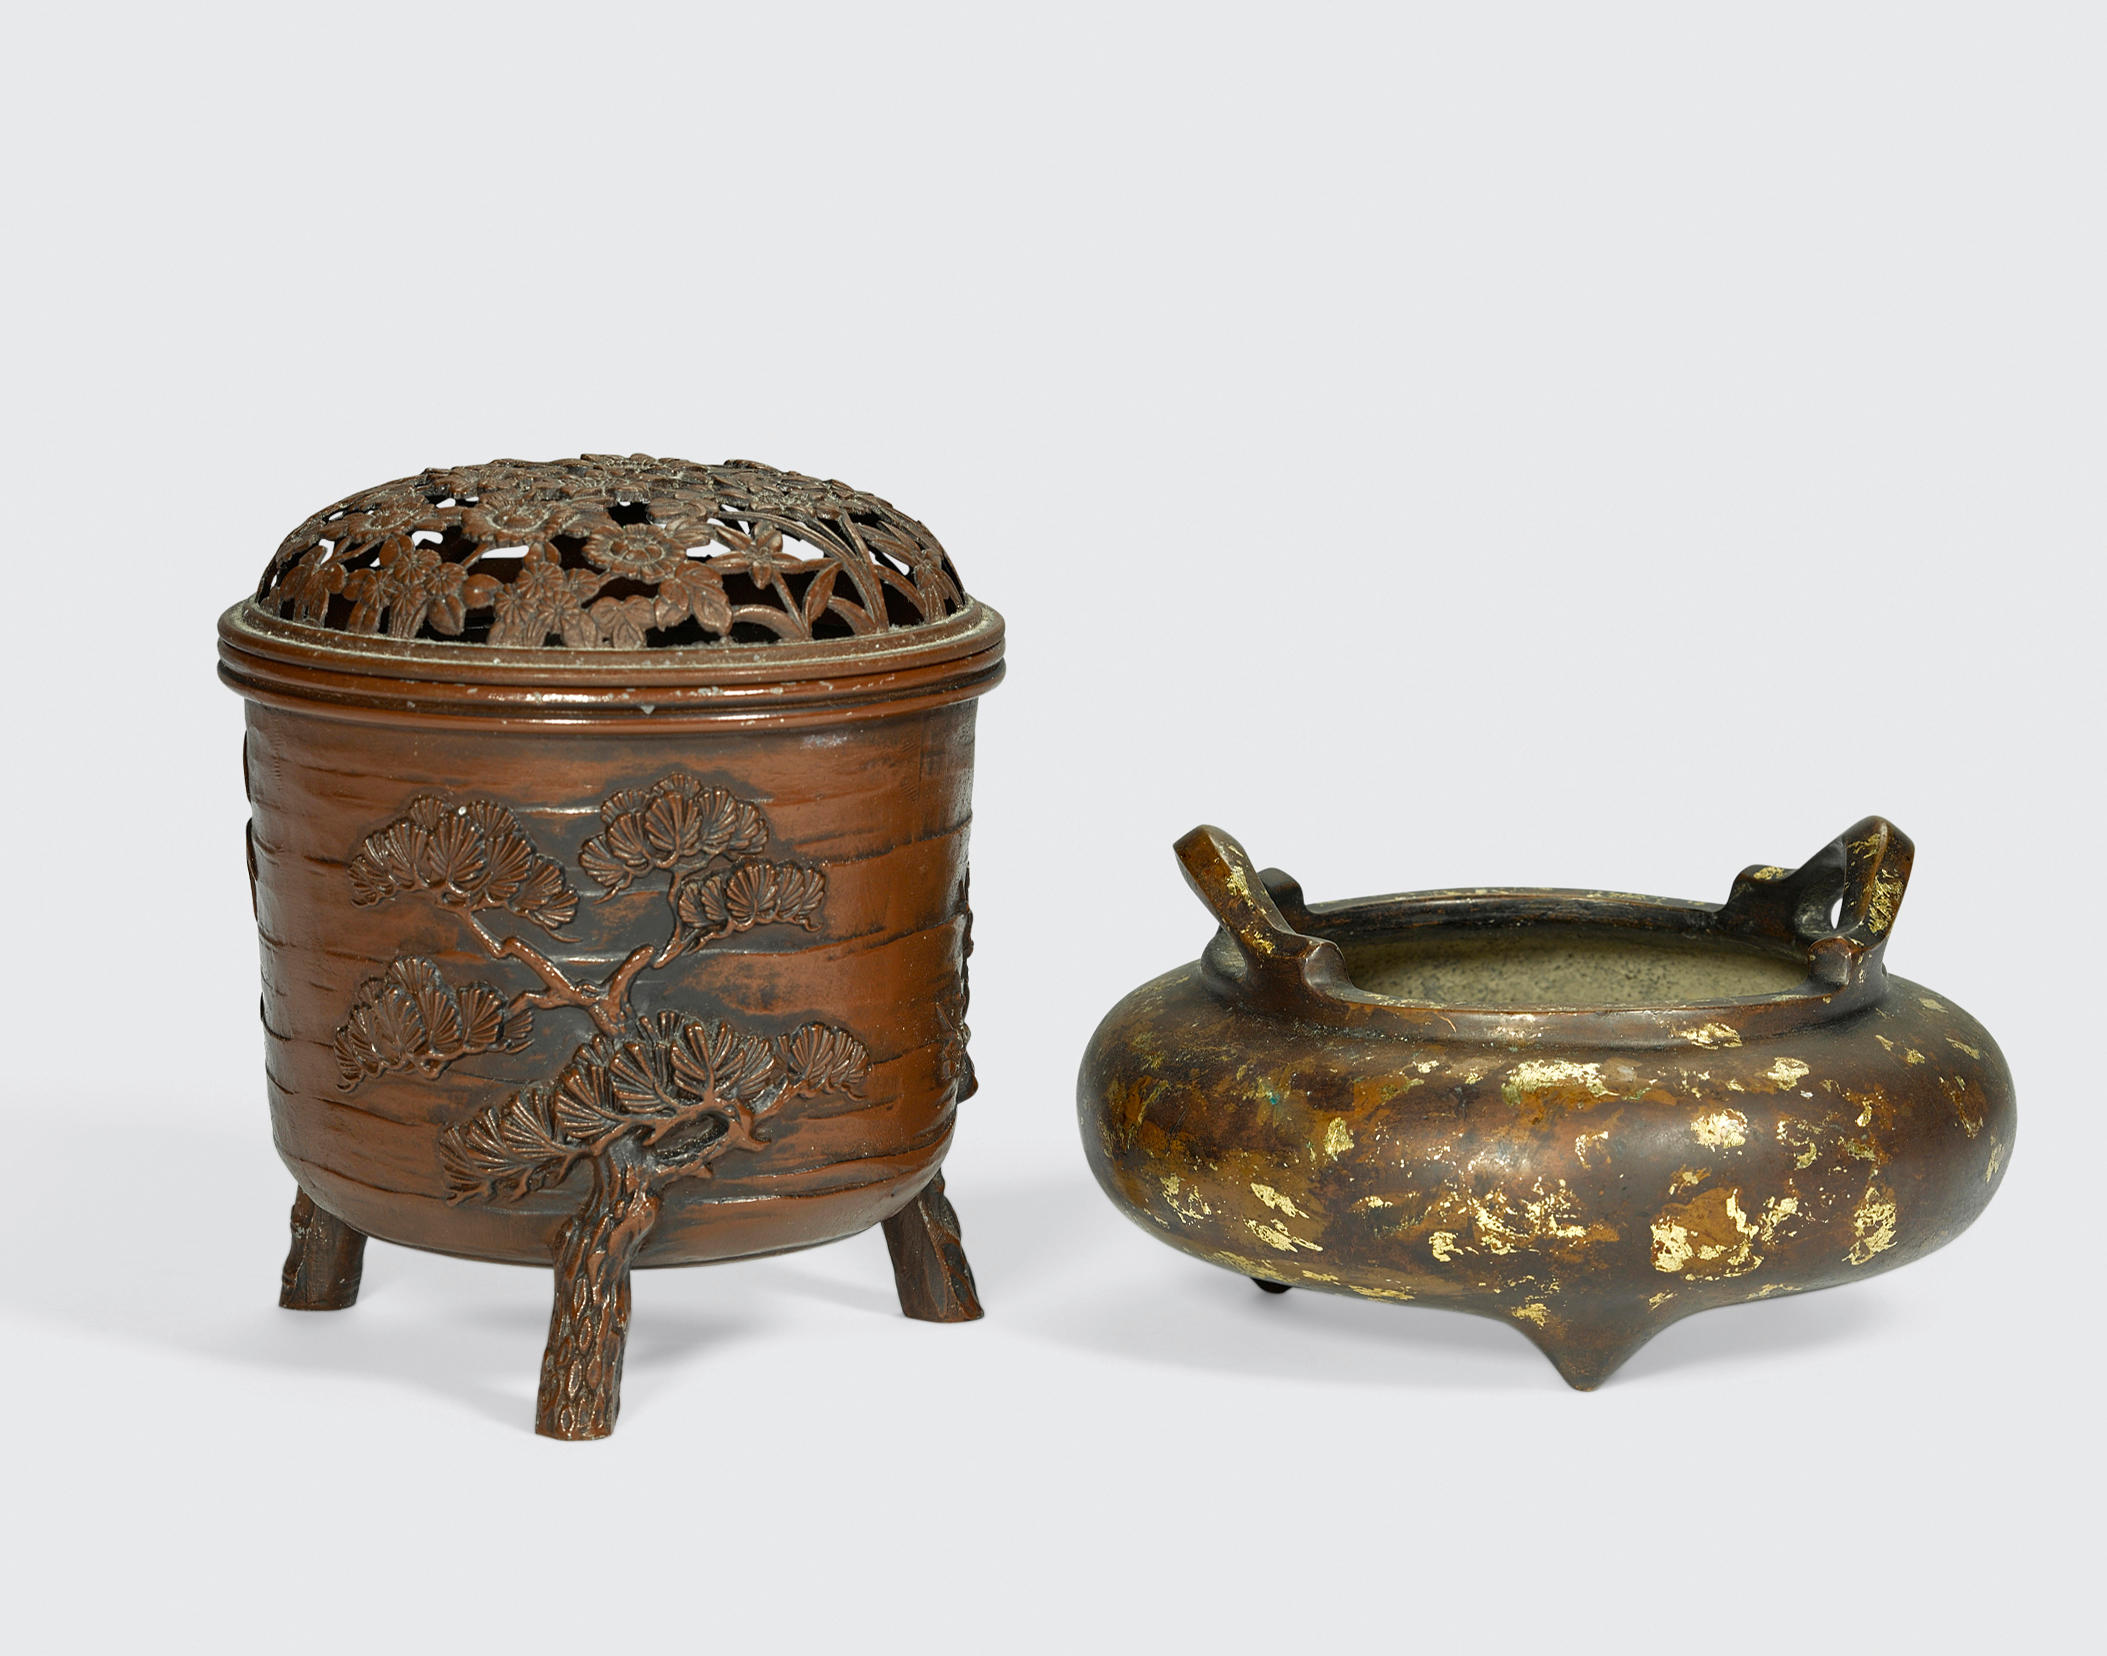 Two metal tripod censers